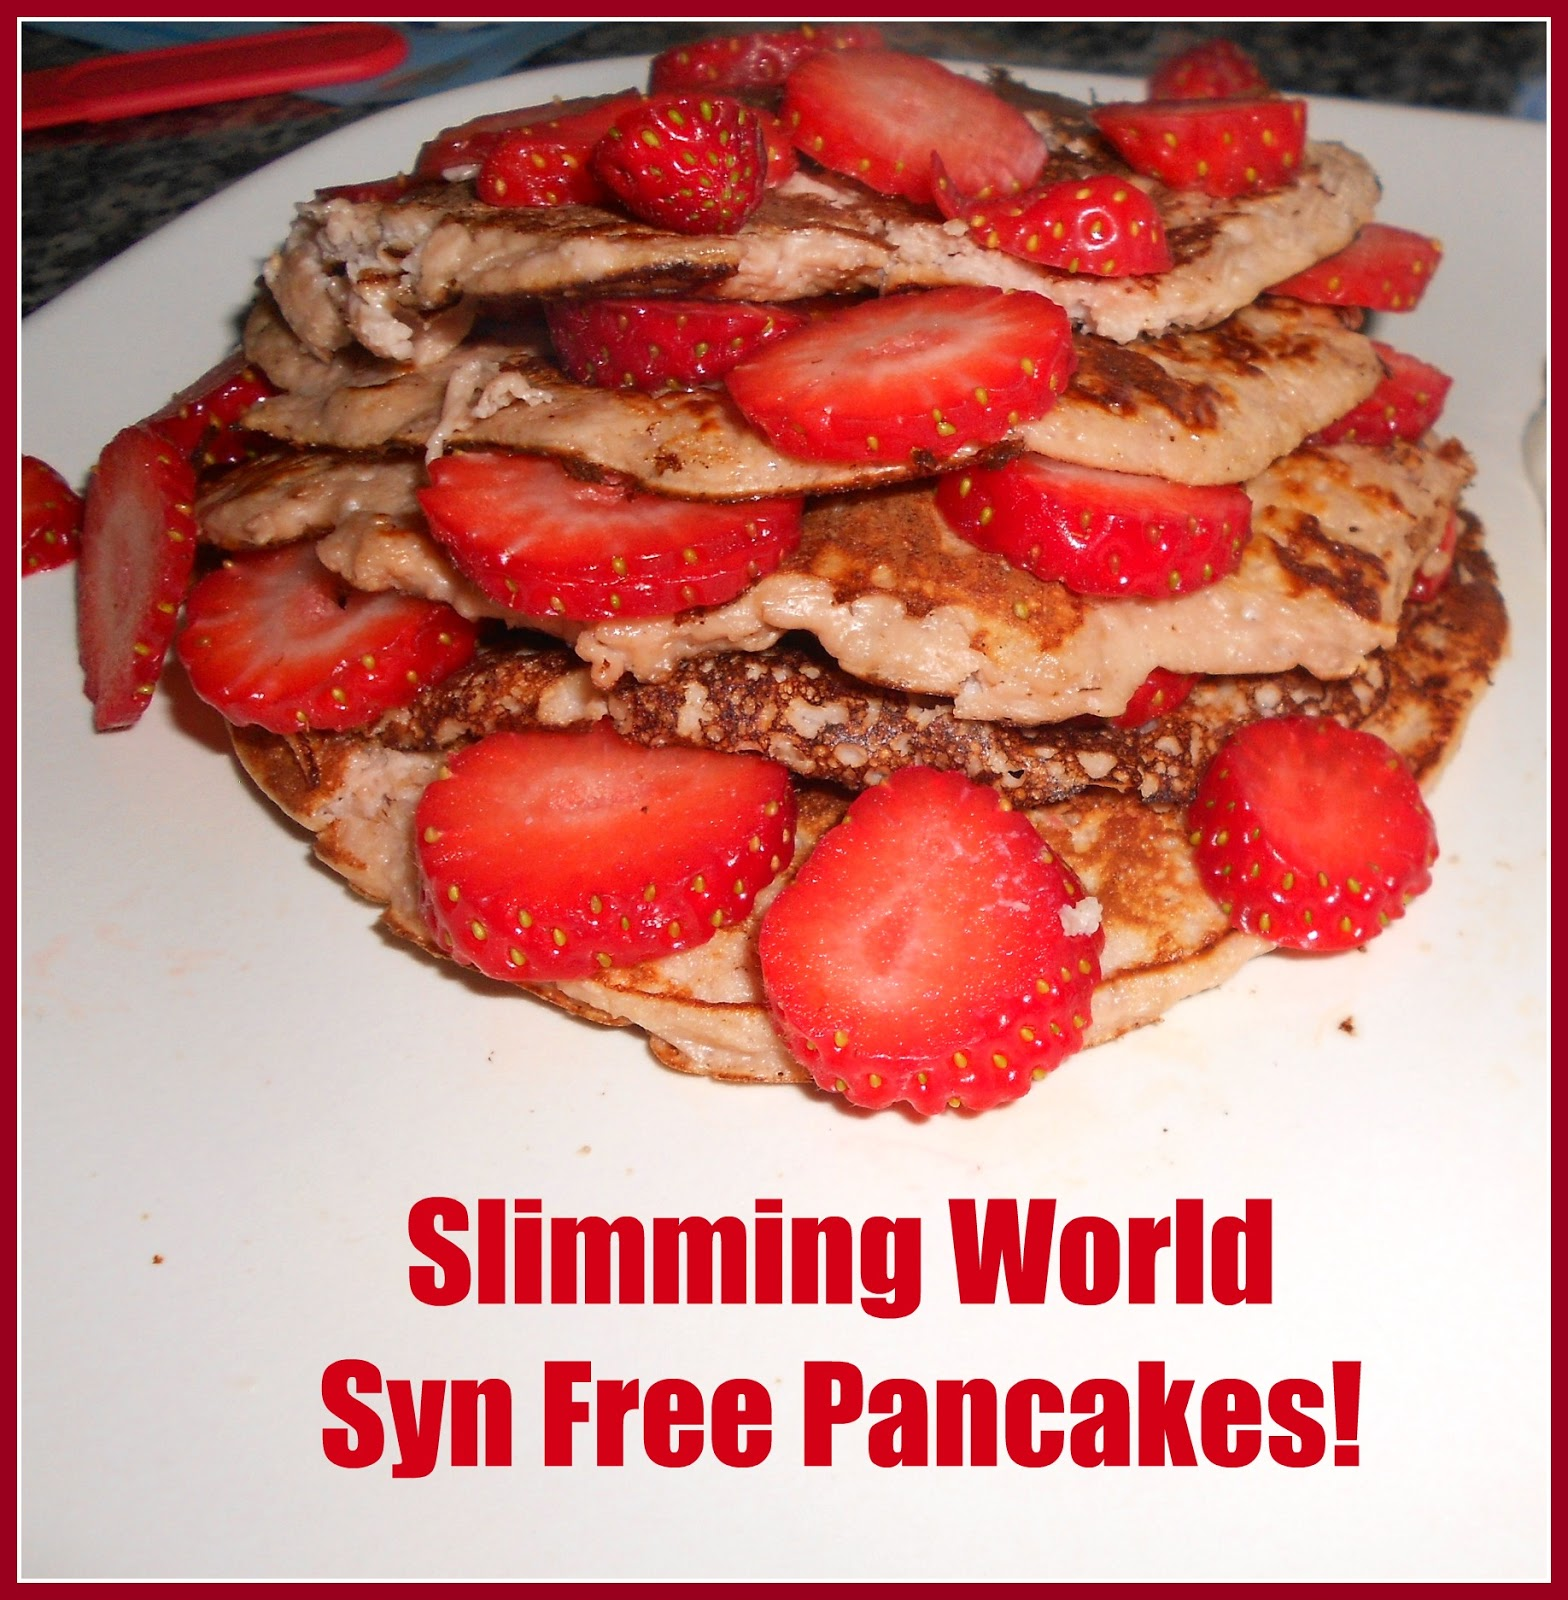 A matter of choice slimming world 39 syn free 39 pancakes The slimming world